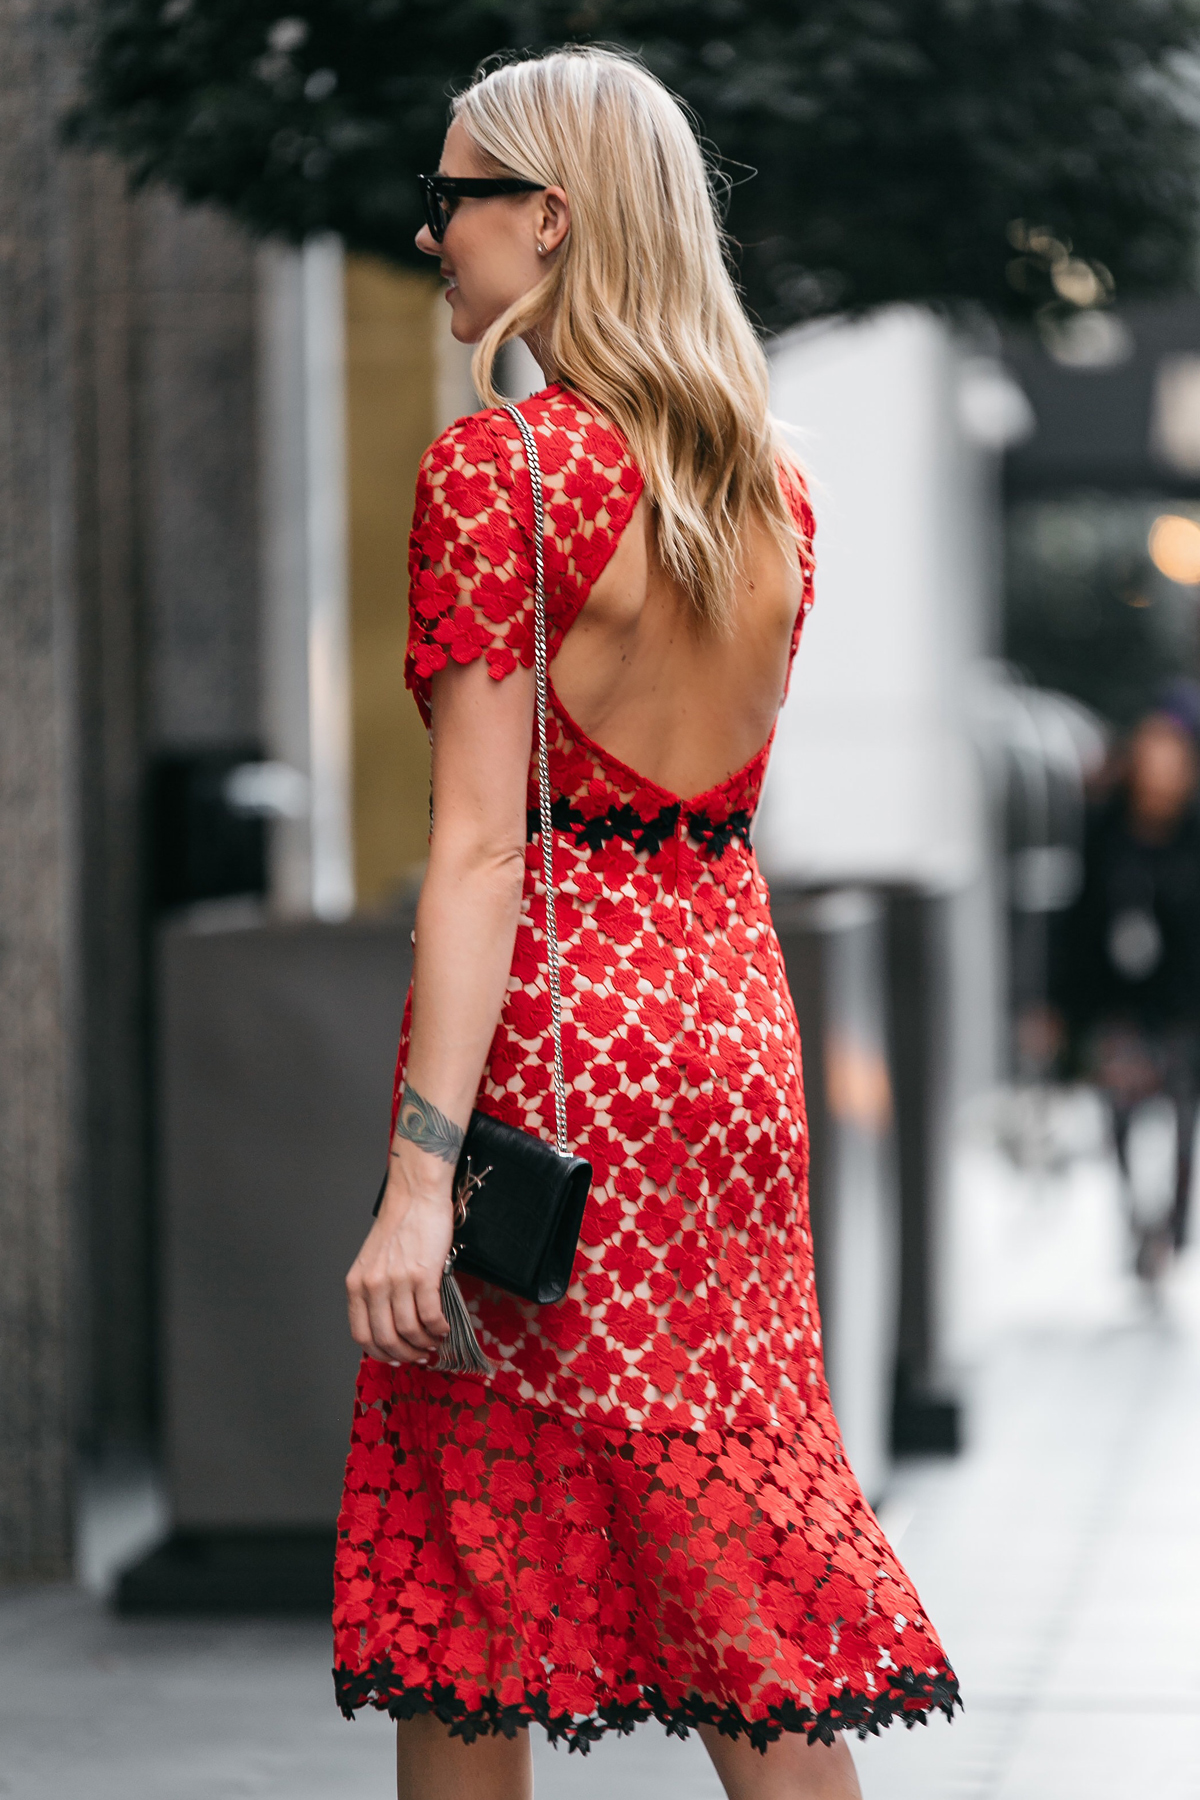 Fashion Jackson, Dallas Blogger, Fashion Blogger, Street Style, Jill Stuart Floral Red Lace Dress, Saint Laurent Monogram Handbag